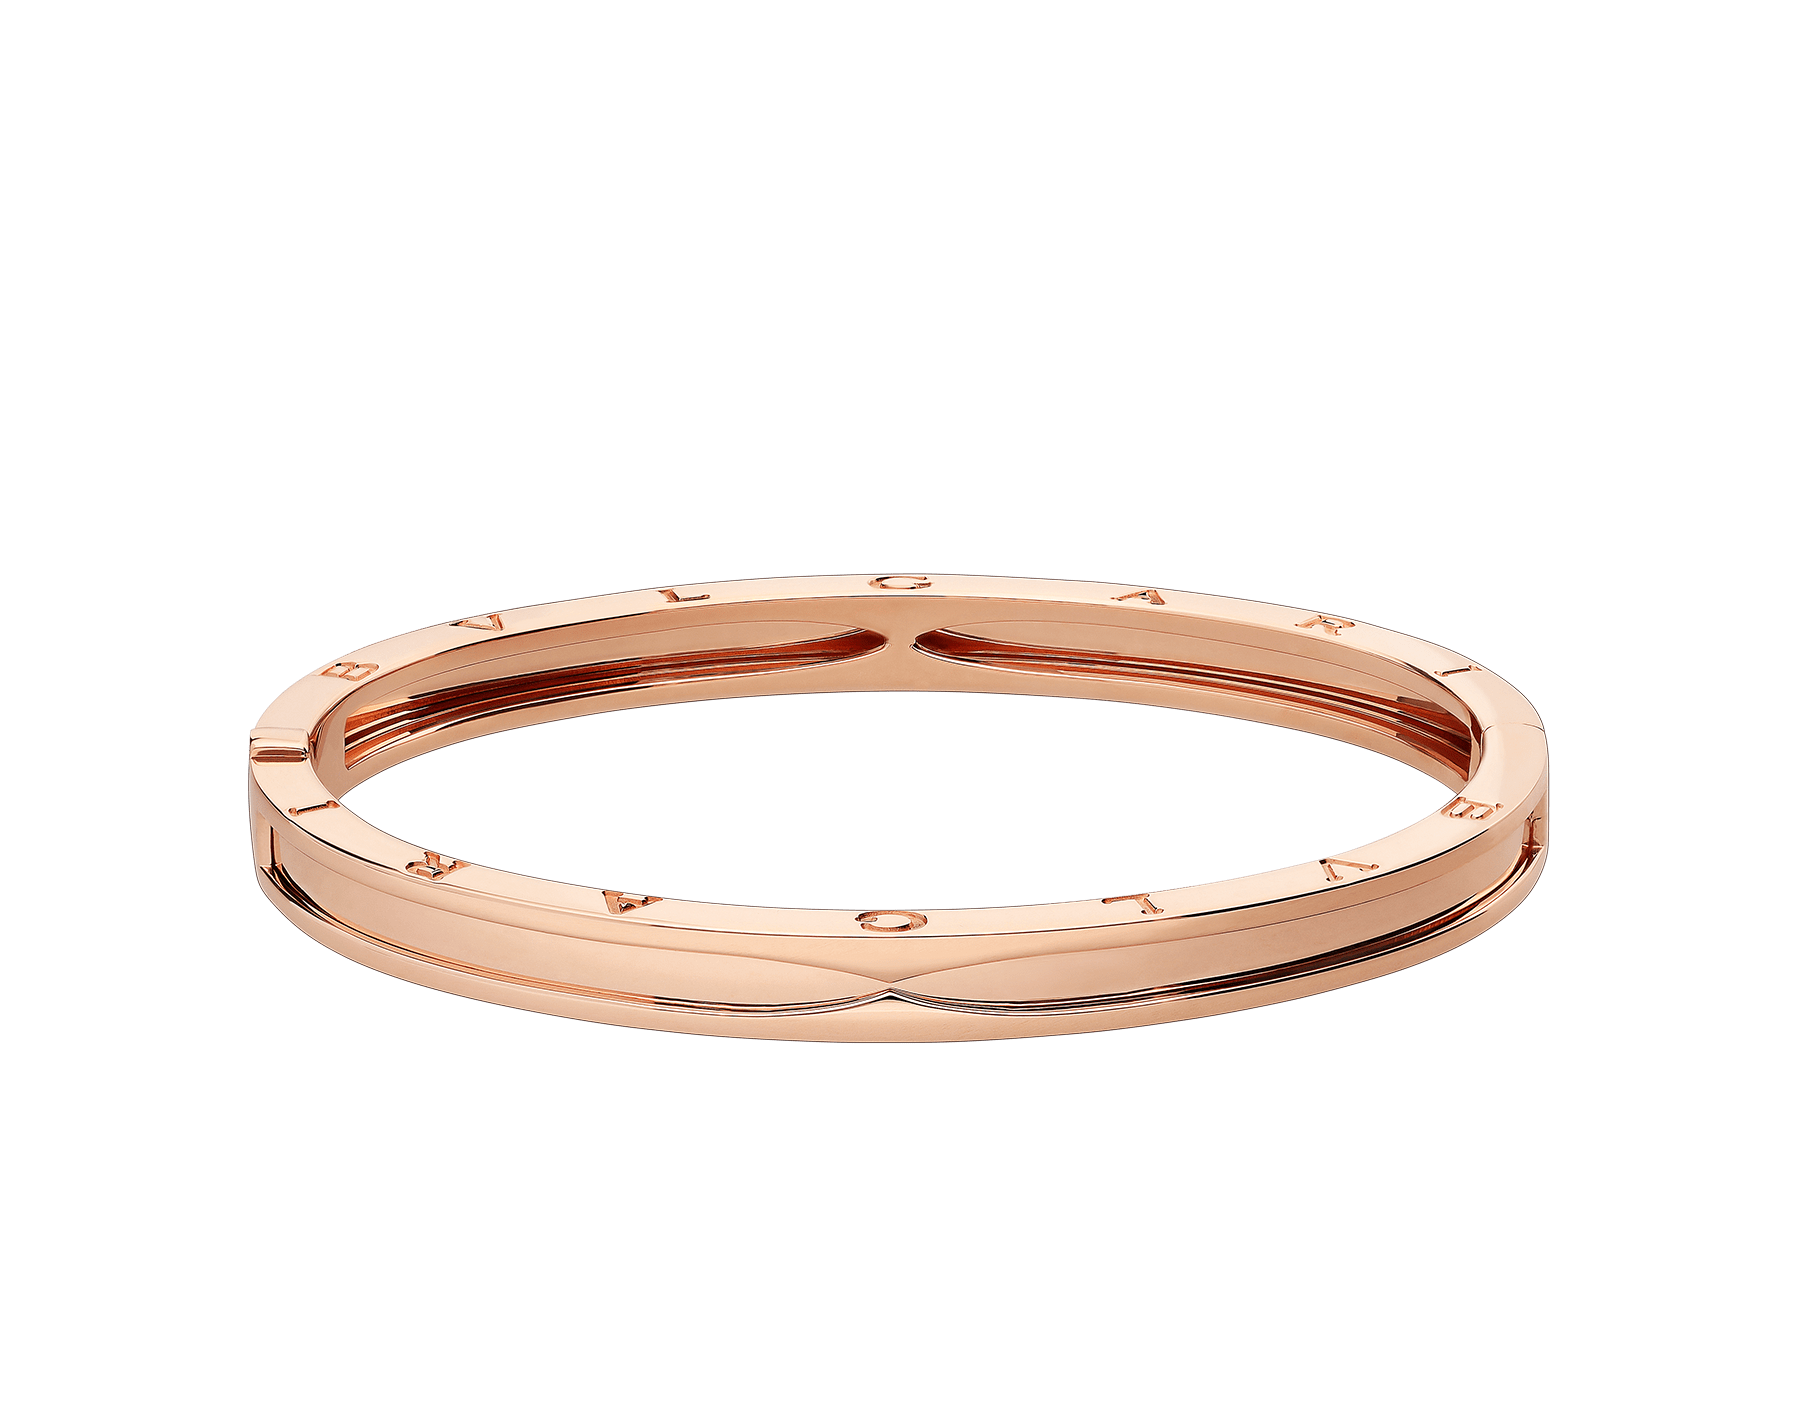 B.zero1 bangle bracelet in 18 kt rose gold. BR857371 image 2